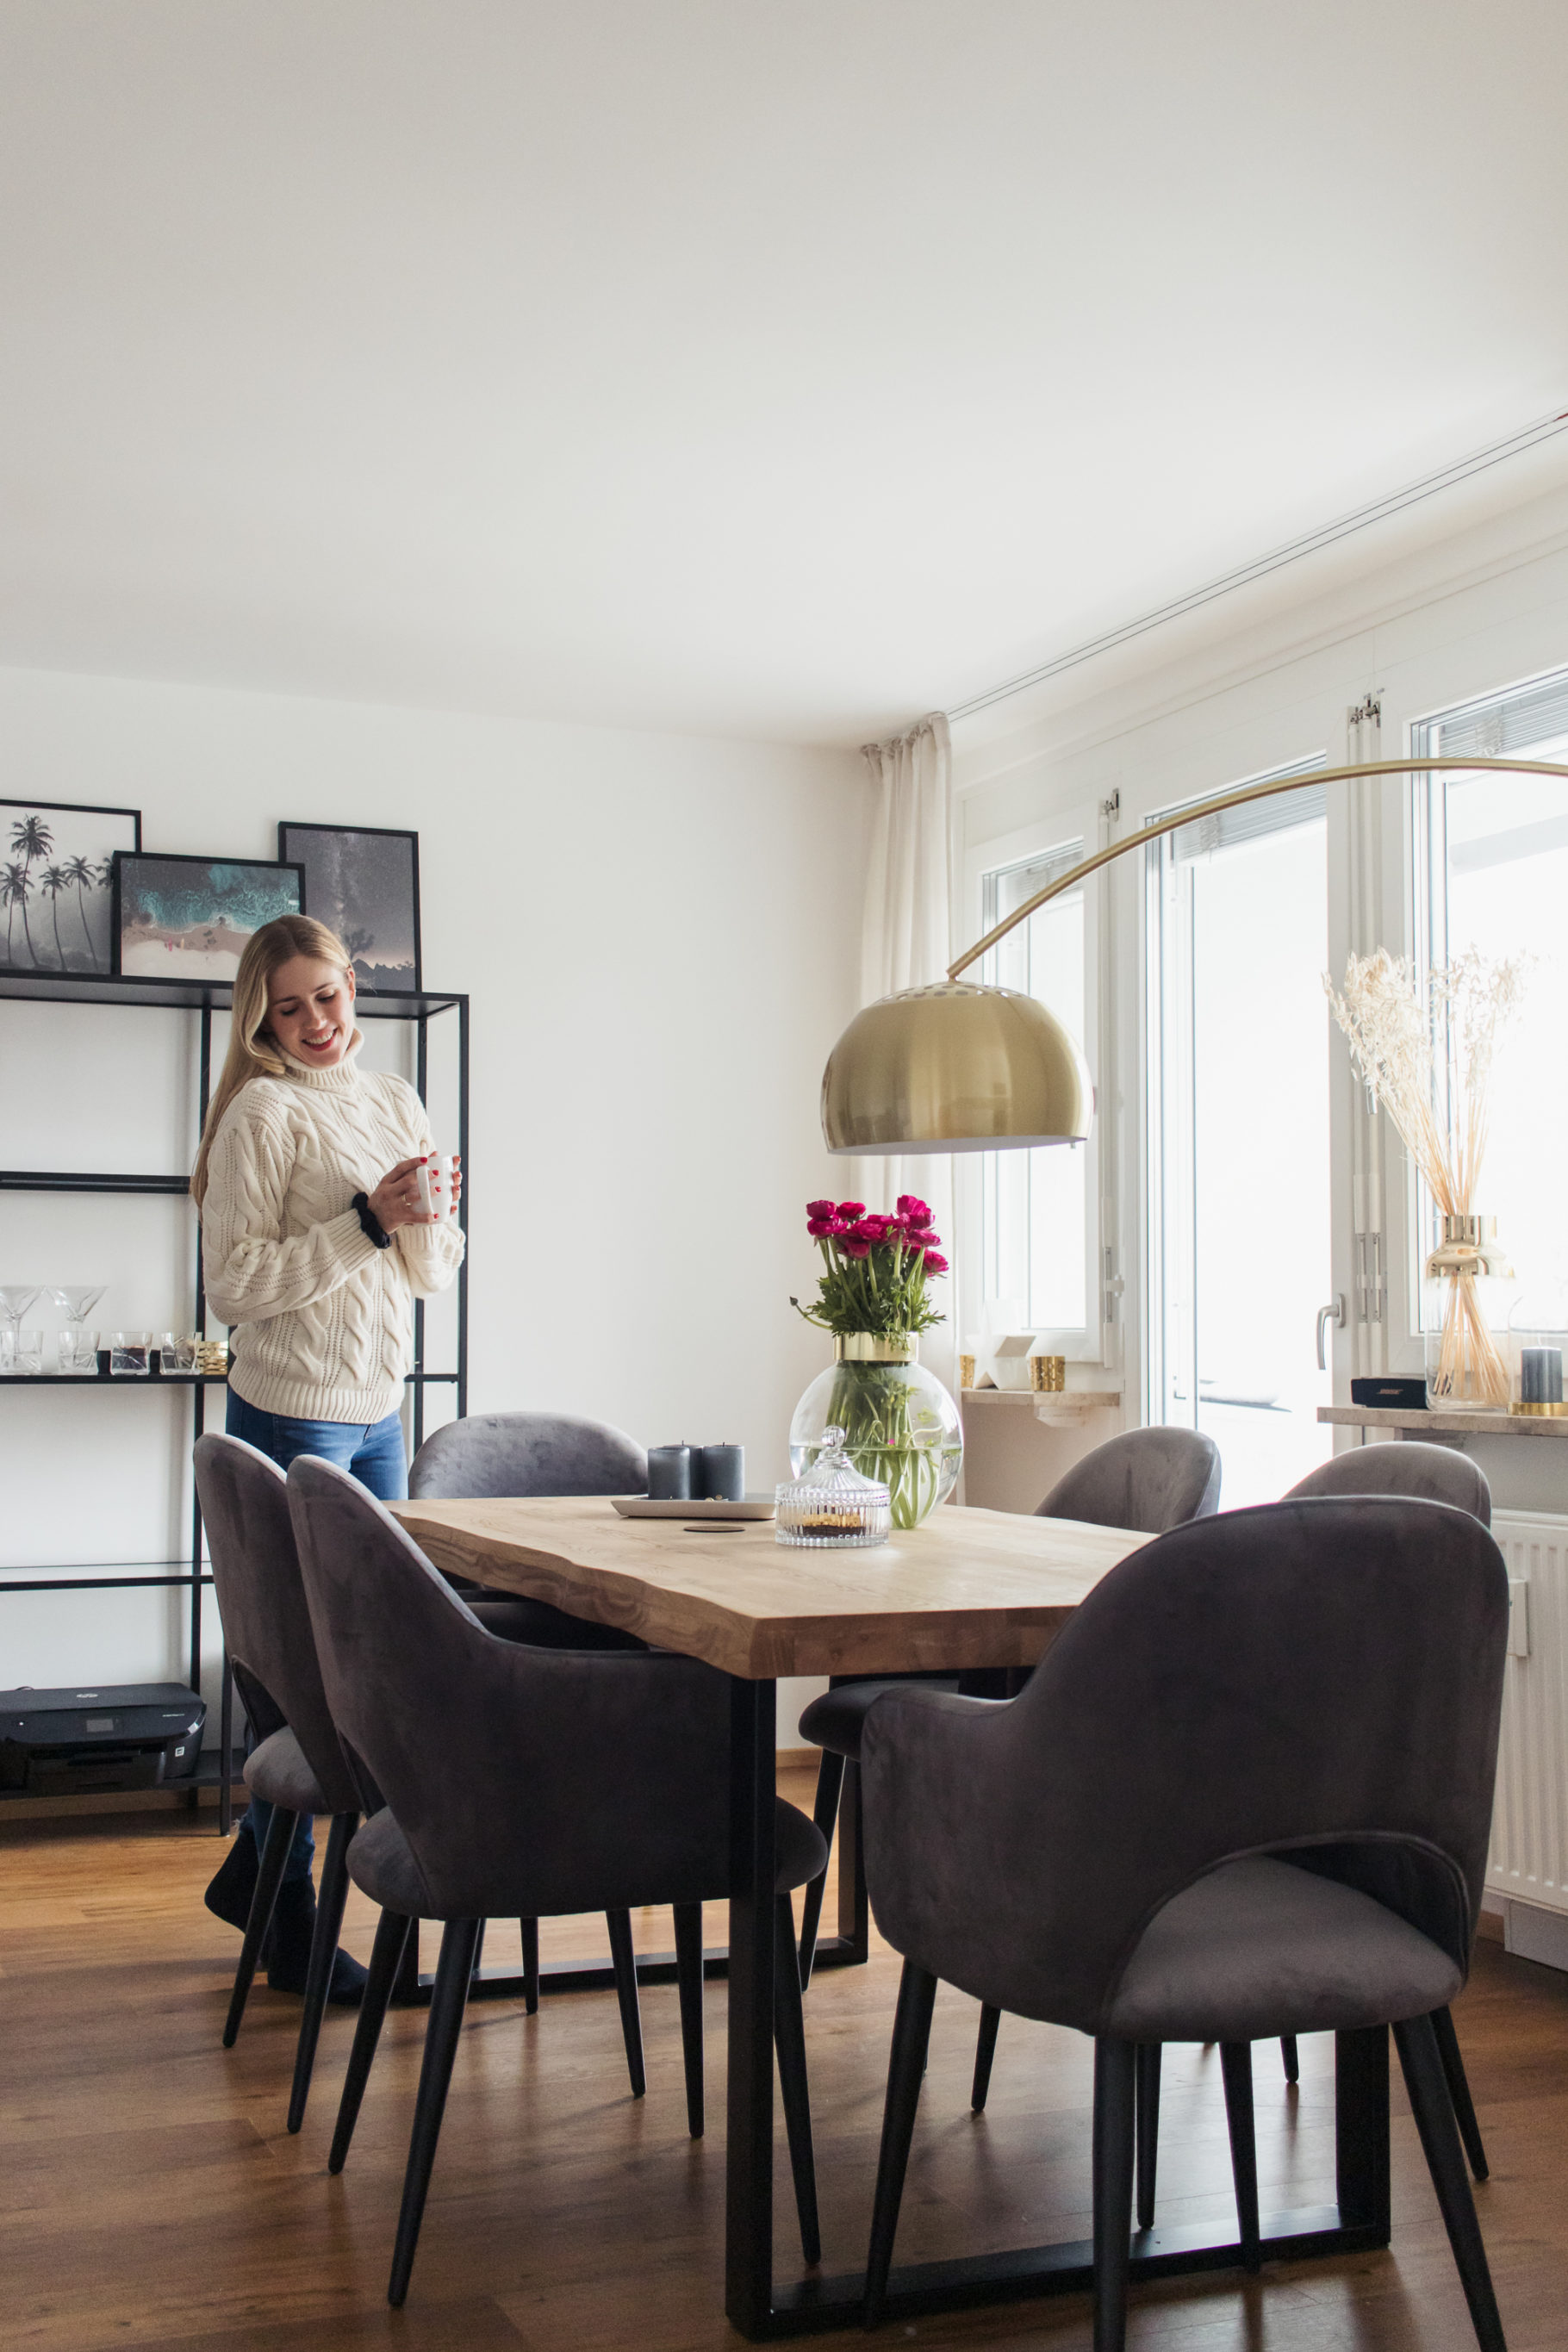 Interior Reveal: Esszimmer Bits and Bobs by Eva